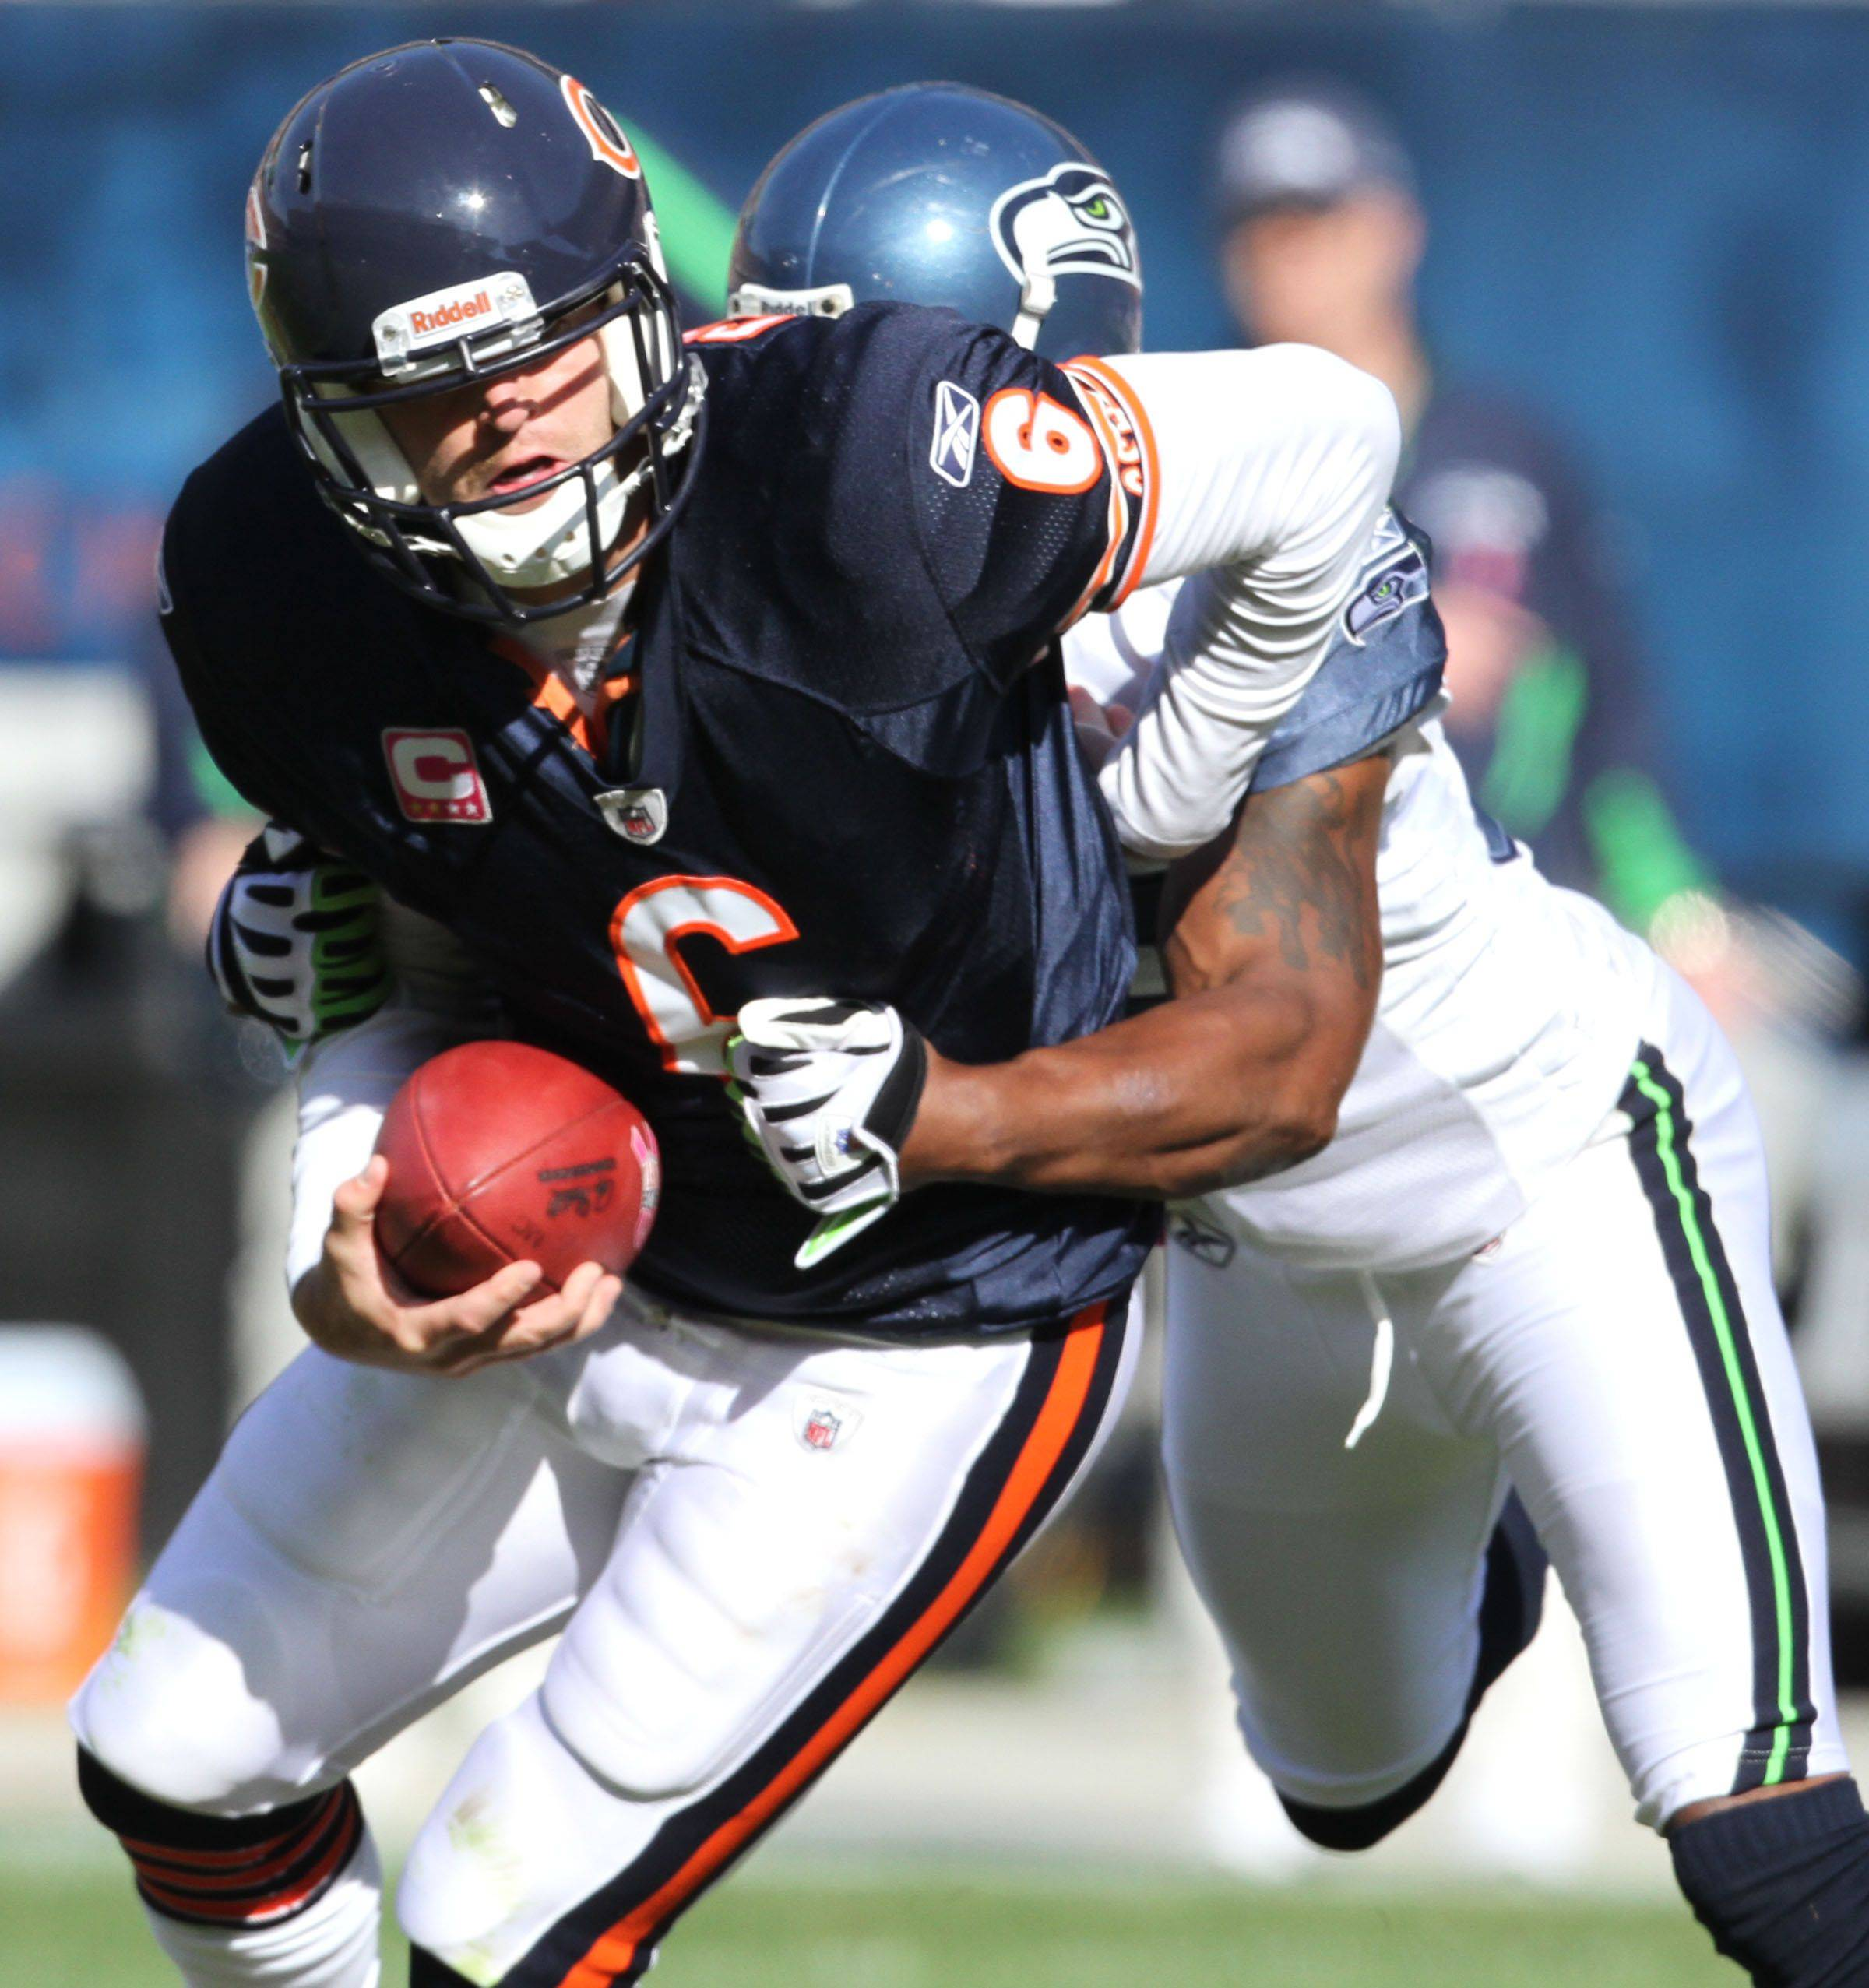 Bears v Seahawks Photo Gallery